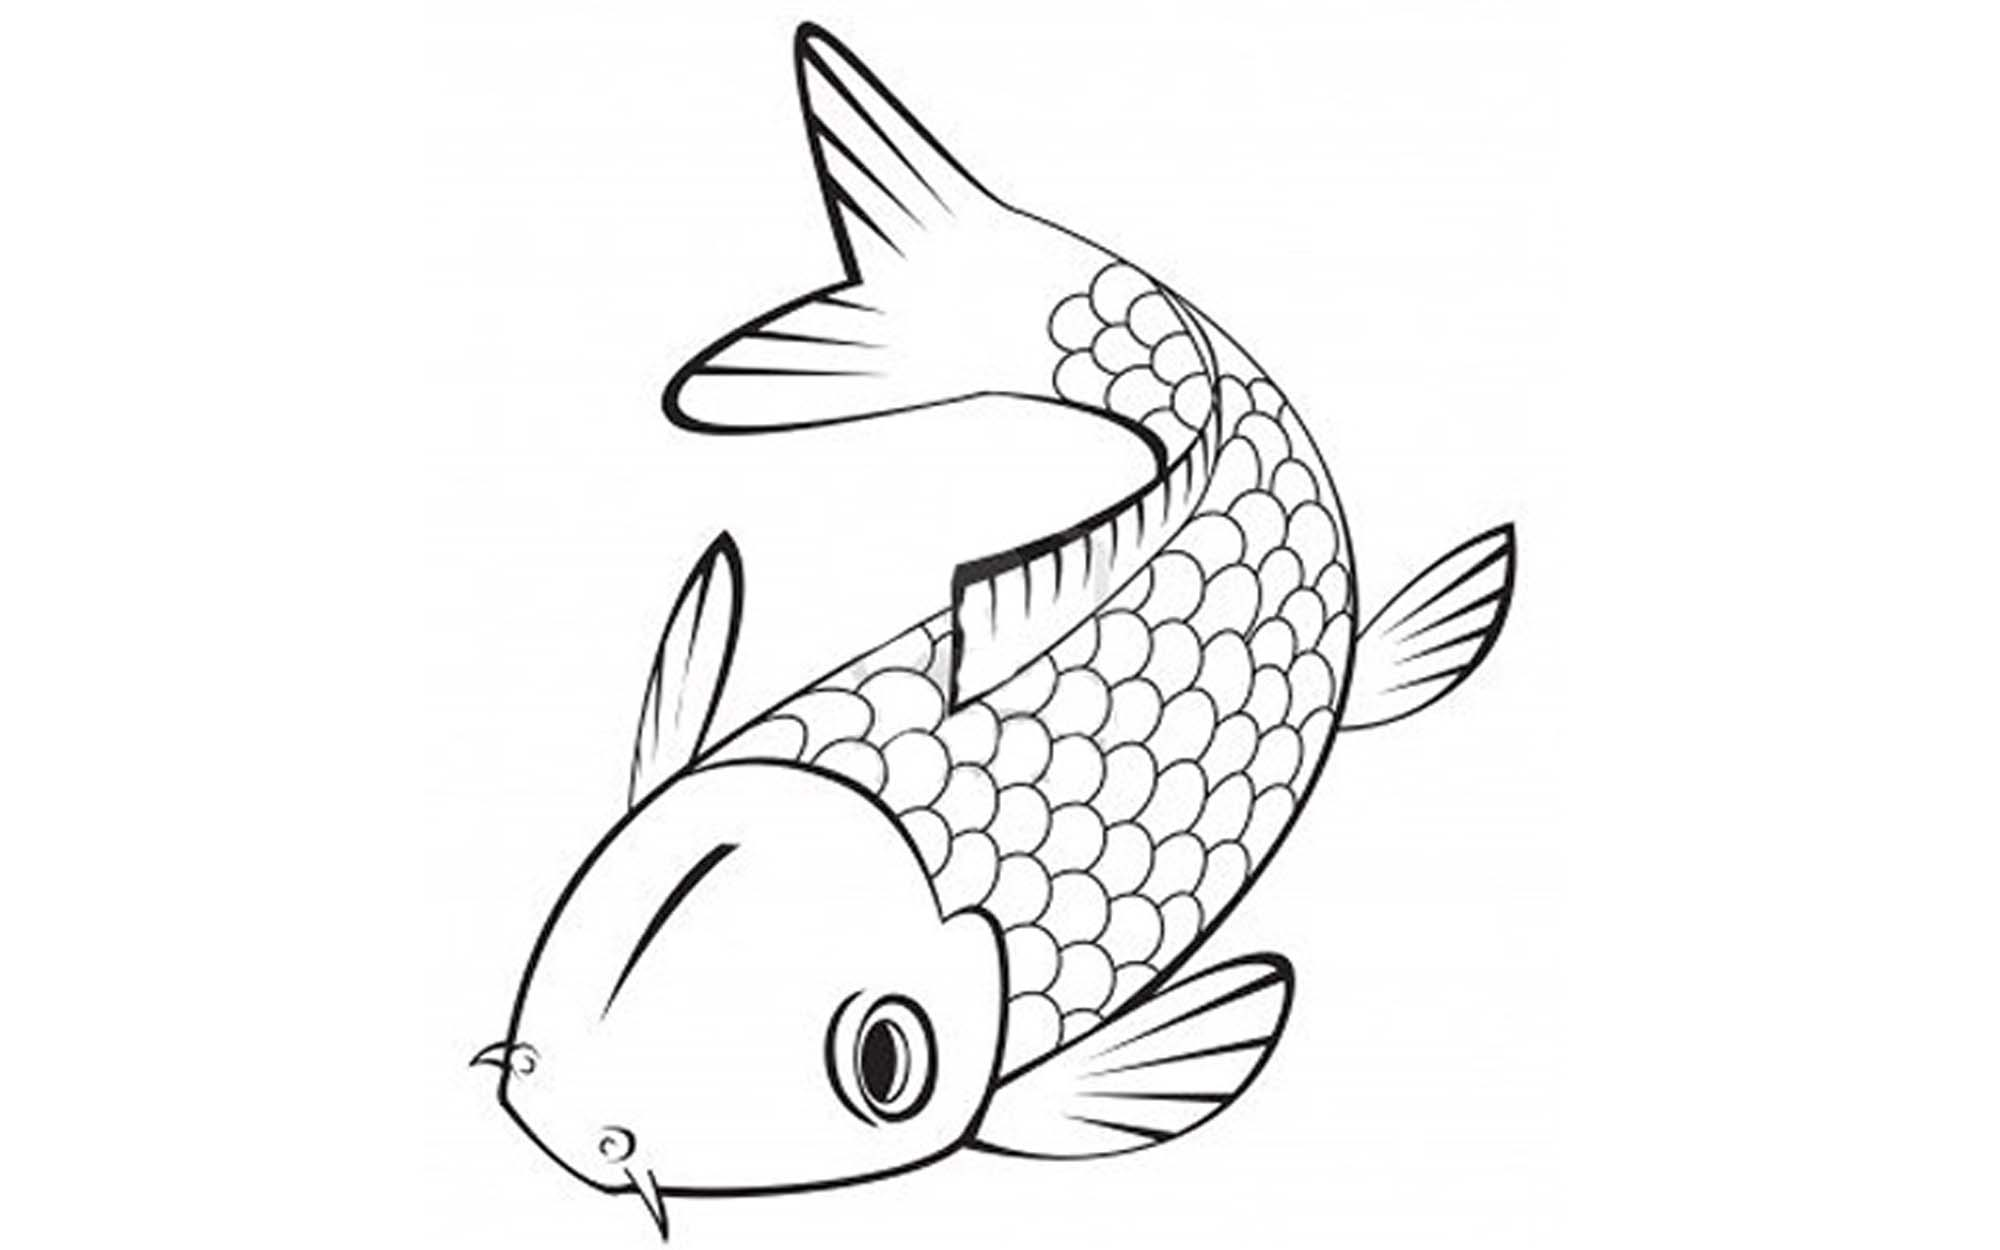 fish color print download cute and educative fish coloring pages fish color 1 1